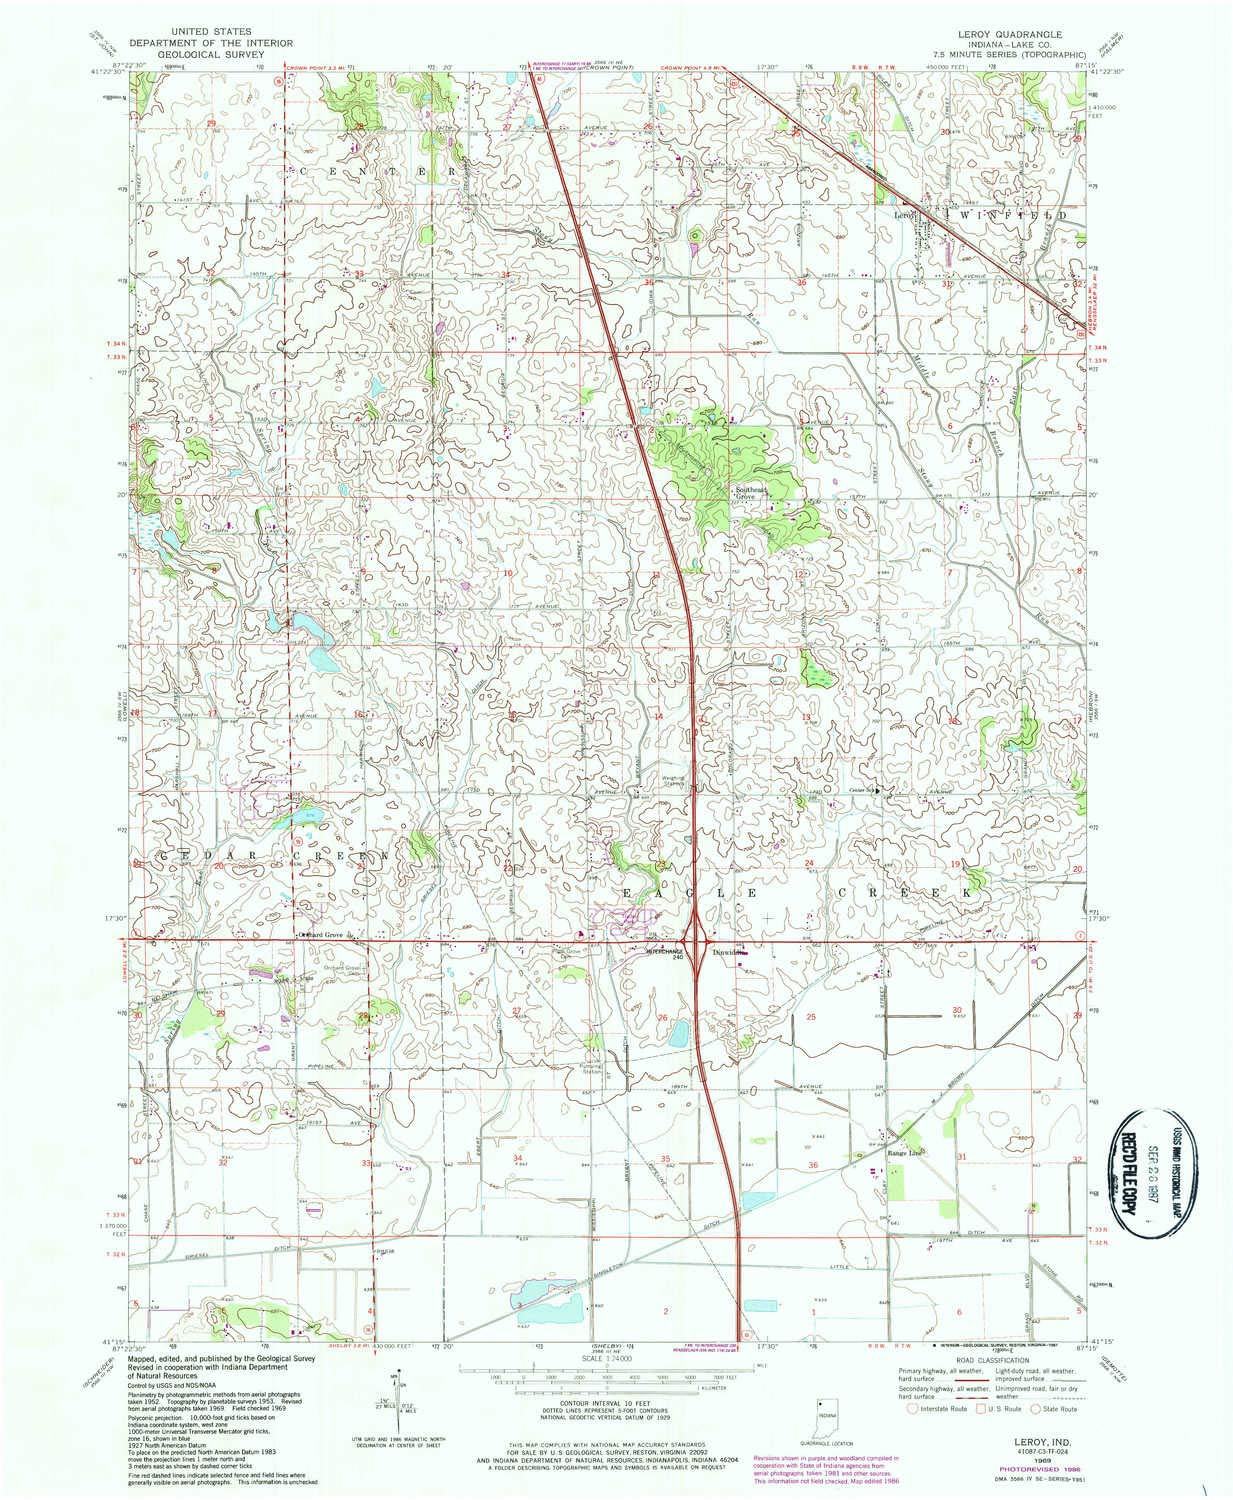 Amazon.com : YellowMaps Leroy in topo map, 1:24000 Scale ... on lane lines map, gas lines map, ocean lines map, path lines map, rail lines map, energy lines map, number lines map, city lines map, railroad lines map, wind lines map, travel lines map, sun lines map,